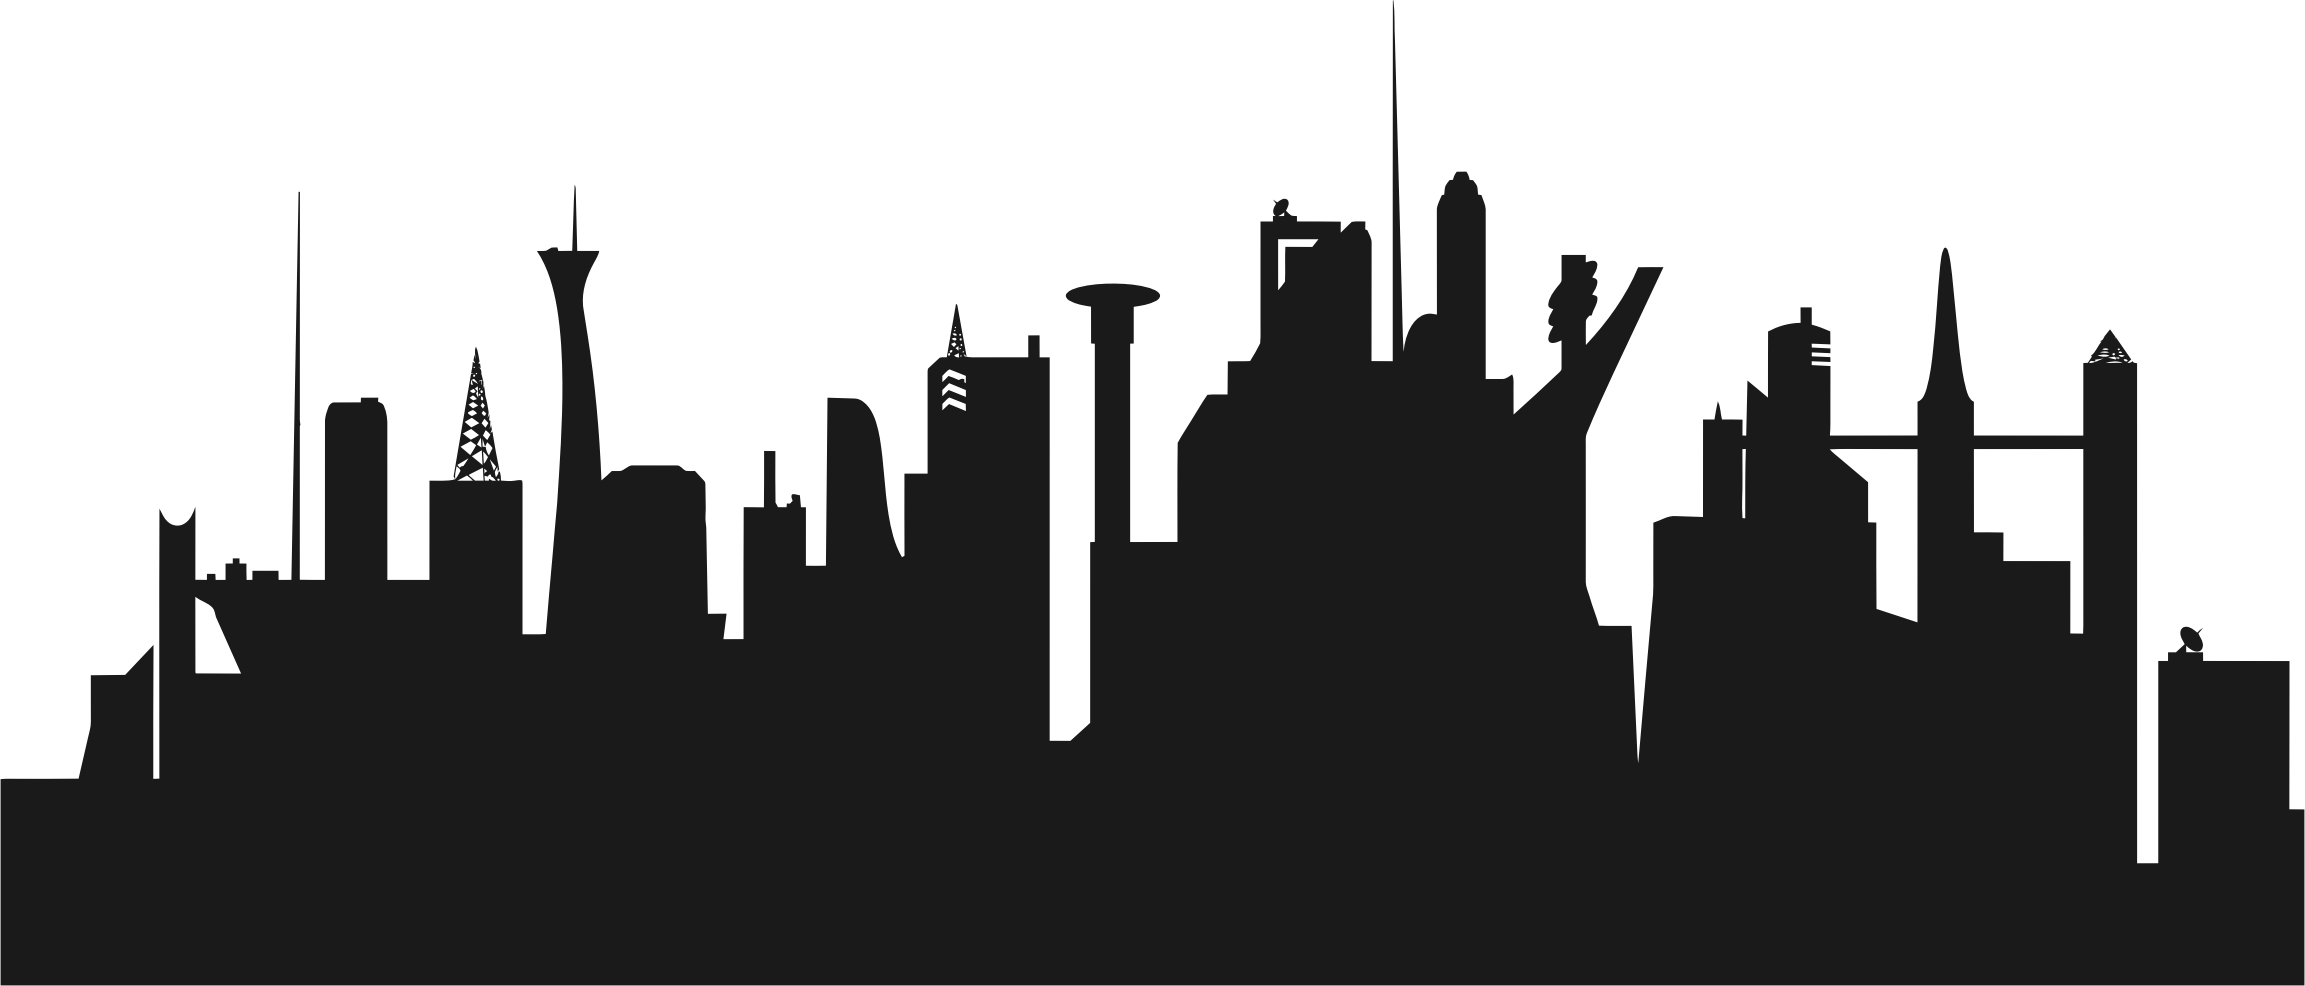 seattle silhouette at getdrawings com free for personal use rh getdrawings com seattle clip art skyline seattle sounders clip art